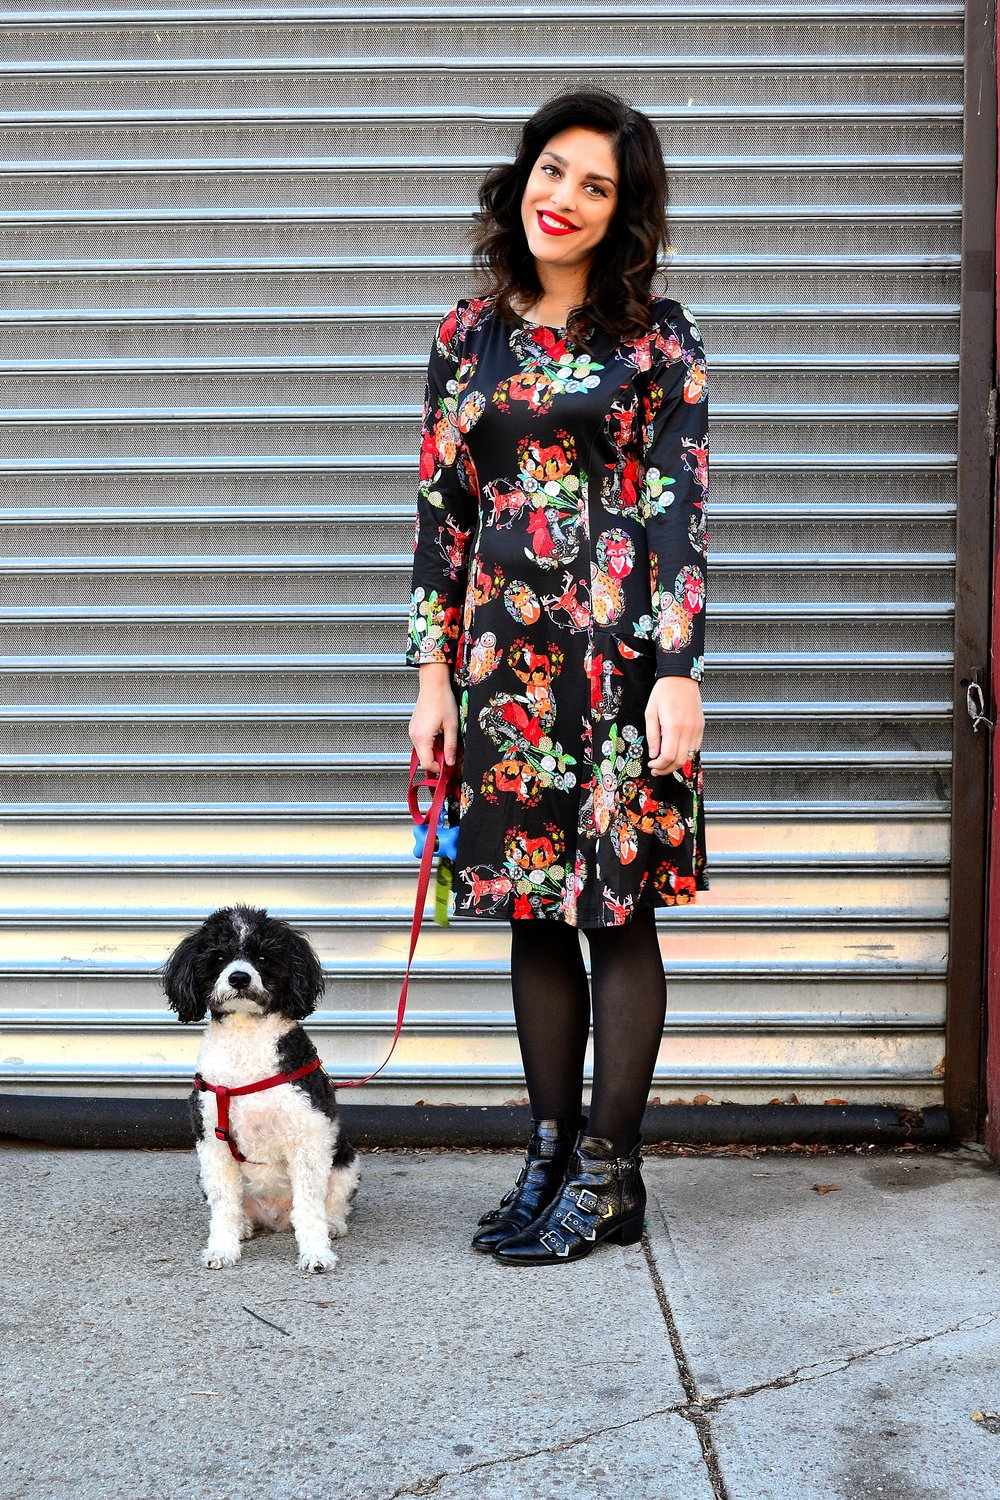 dress- Frock Shop available at ModCloth ,  tights- Express ,  booties- Design Lab available at Lord & Taylor